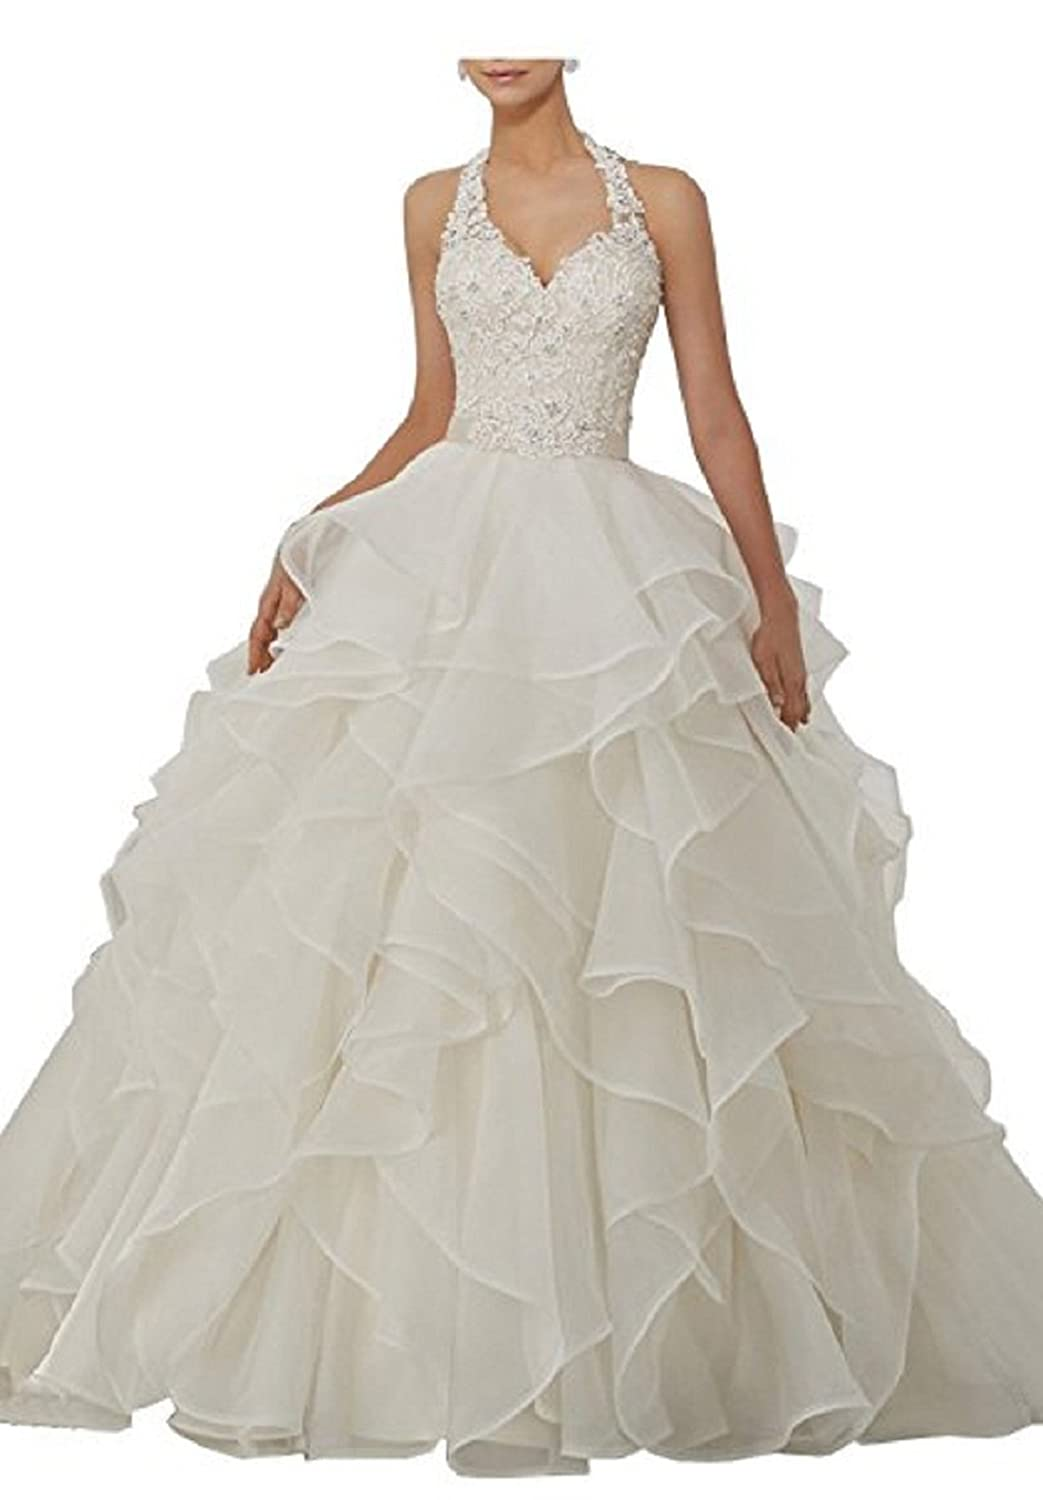 fd1e3bea55 Women s A-Line Sweetheart V Neck Tulle Lace Applique Wedding Dress Bridal  Ball Gown for Bride  Amazon.co.uk  Clothing